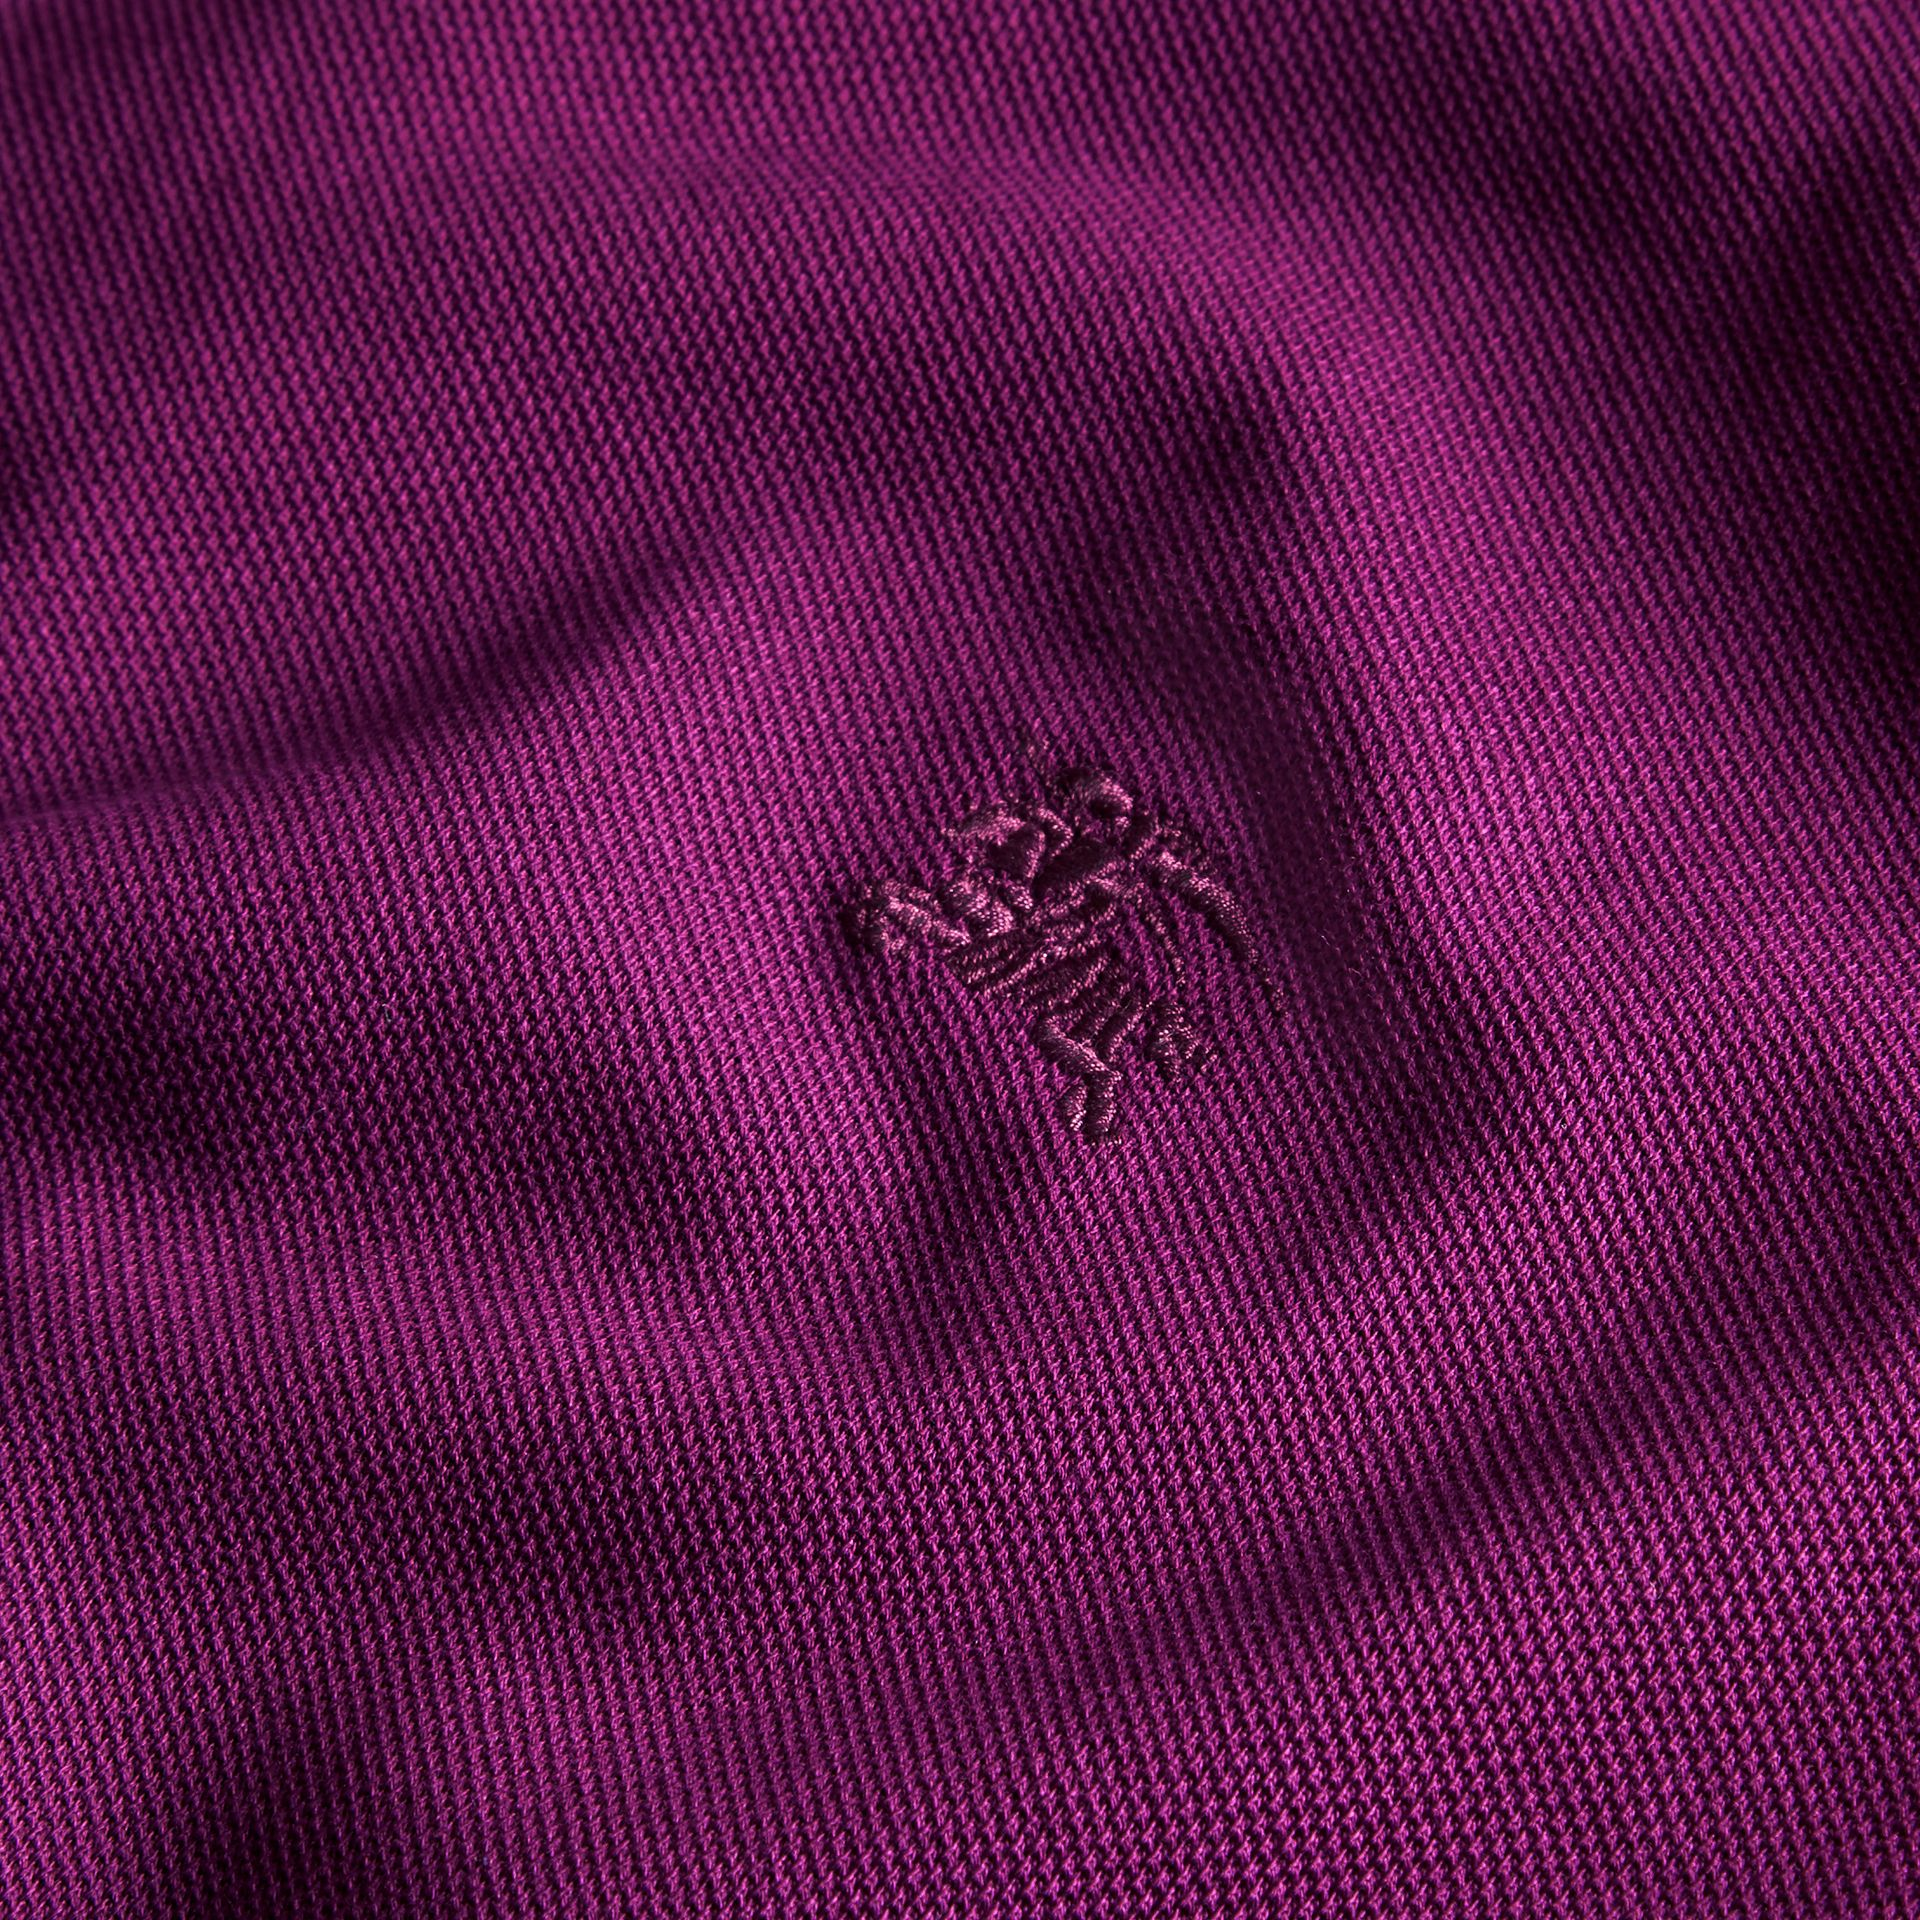 Deep purple amethyst Check Placket Cotton Piqué Polo Shirt Deep Purple Amethyst - gallery image 2